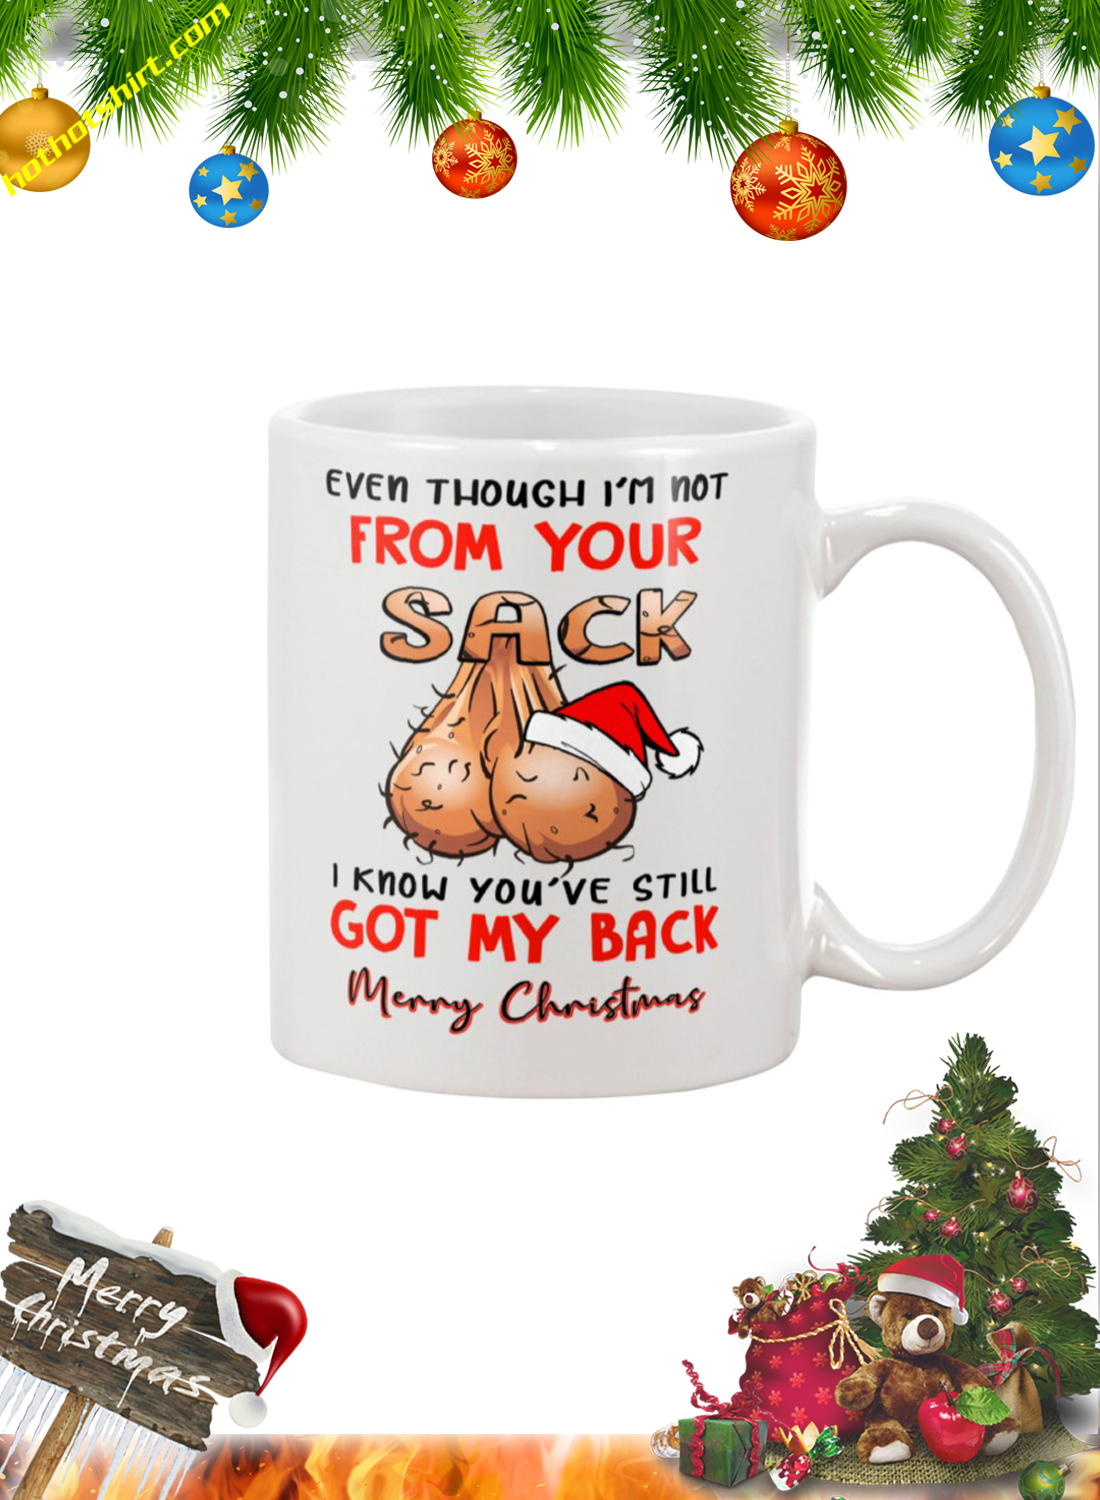 Even though I'm not from your sack merry christmas mug 1